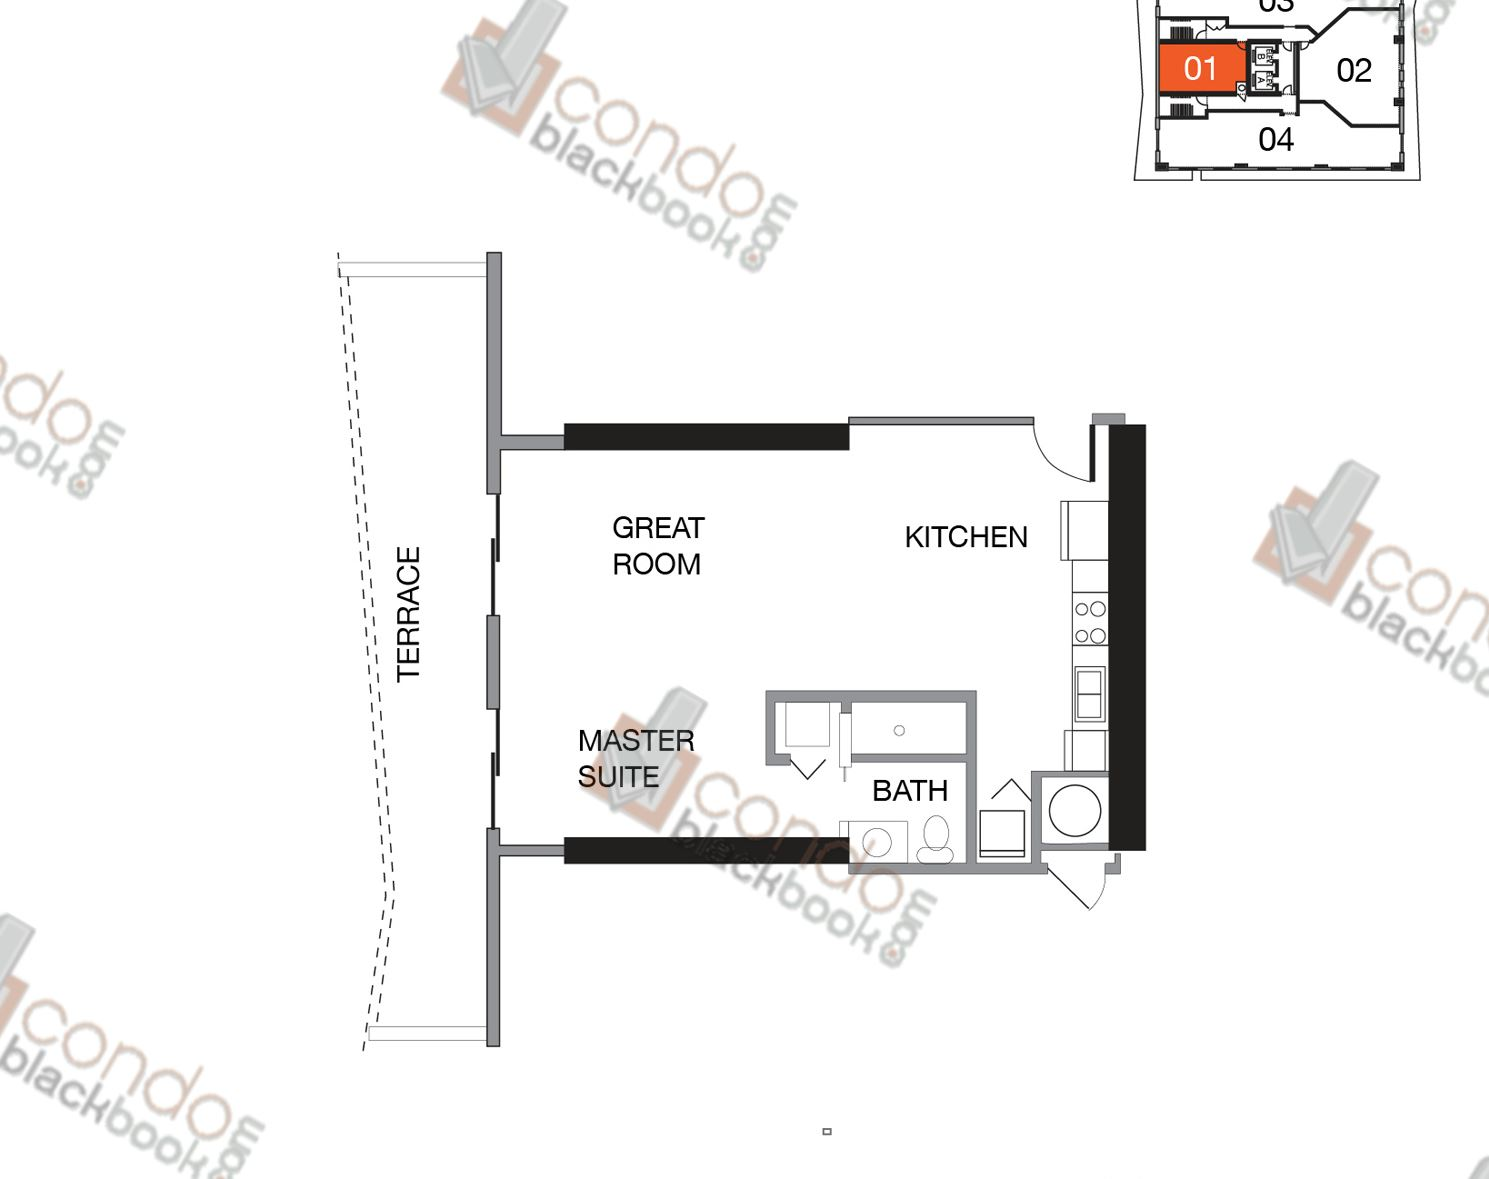 Floor plan for Star Lofts Edgewater Miami, model UNIT 01 (WEST), line 01, 1/1 bedrooms, 556 sq ft